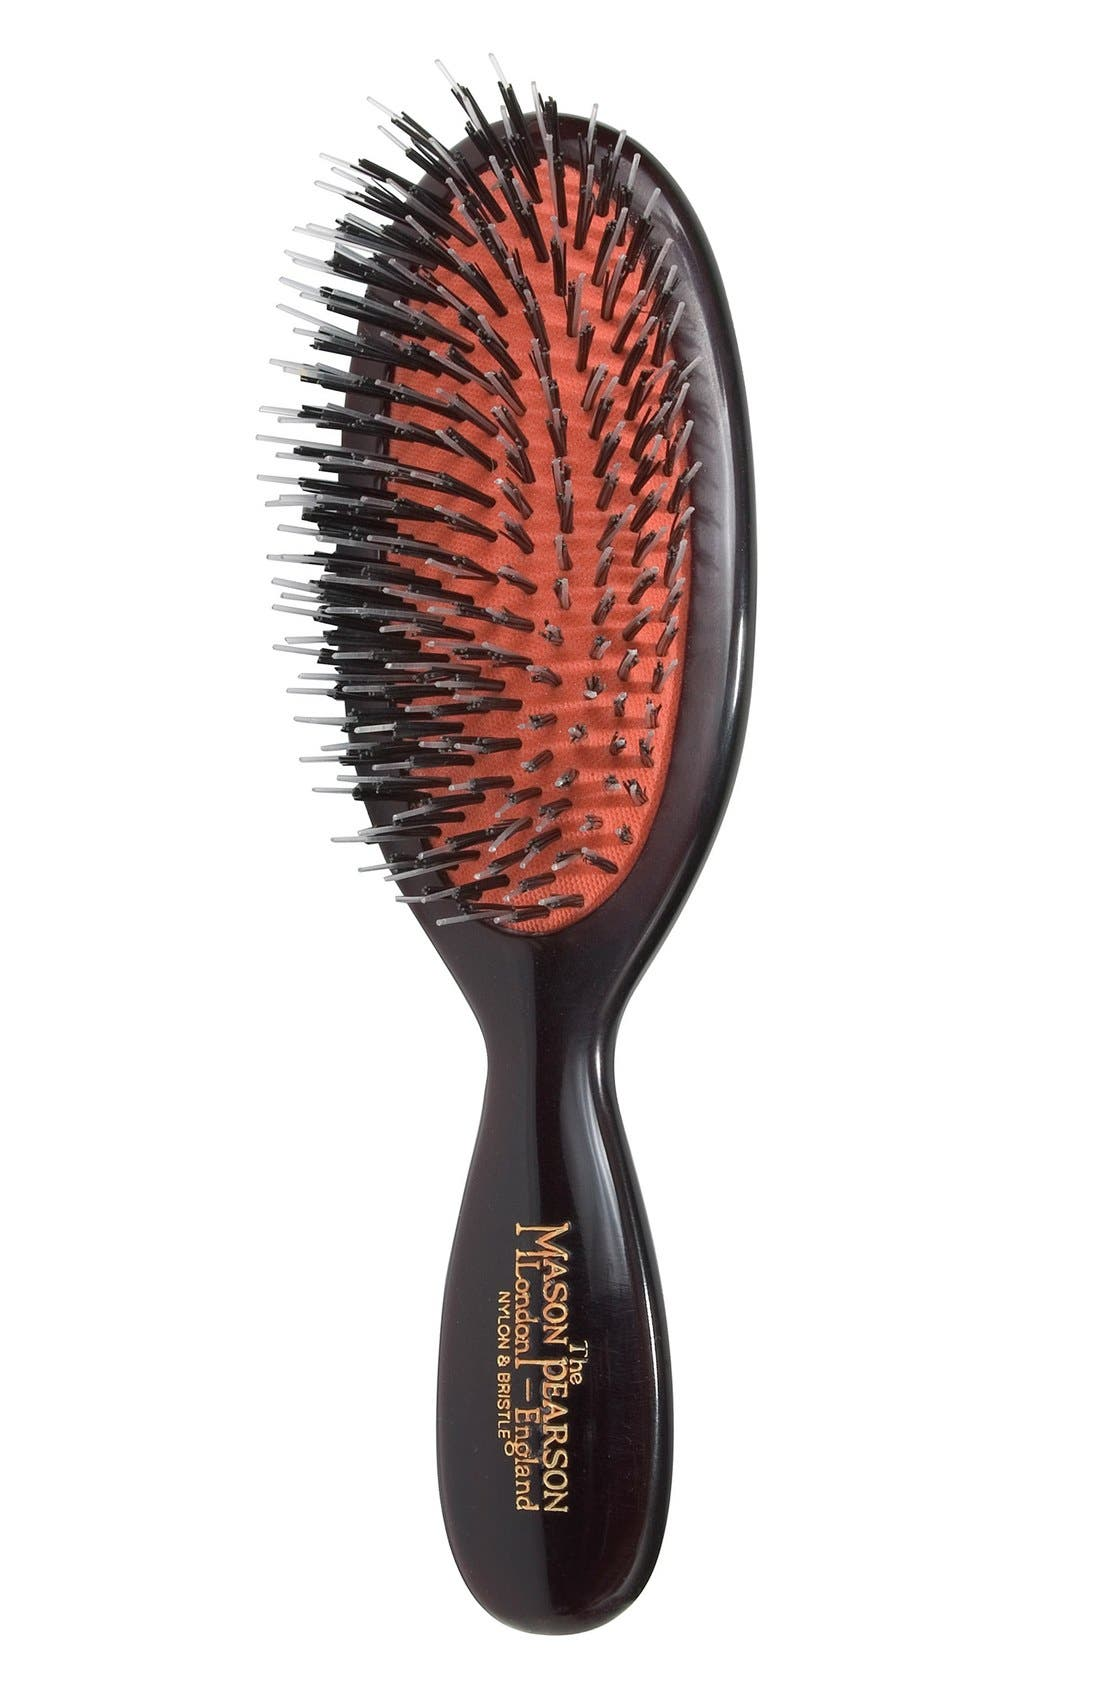 Alternate Image 1 Selected - Mason Pearson Popular Mixture Nylon & Boar Bristle Brush for Long Coarse to Normal Hair